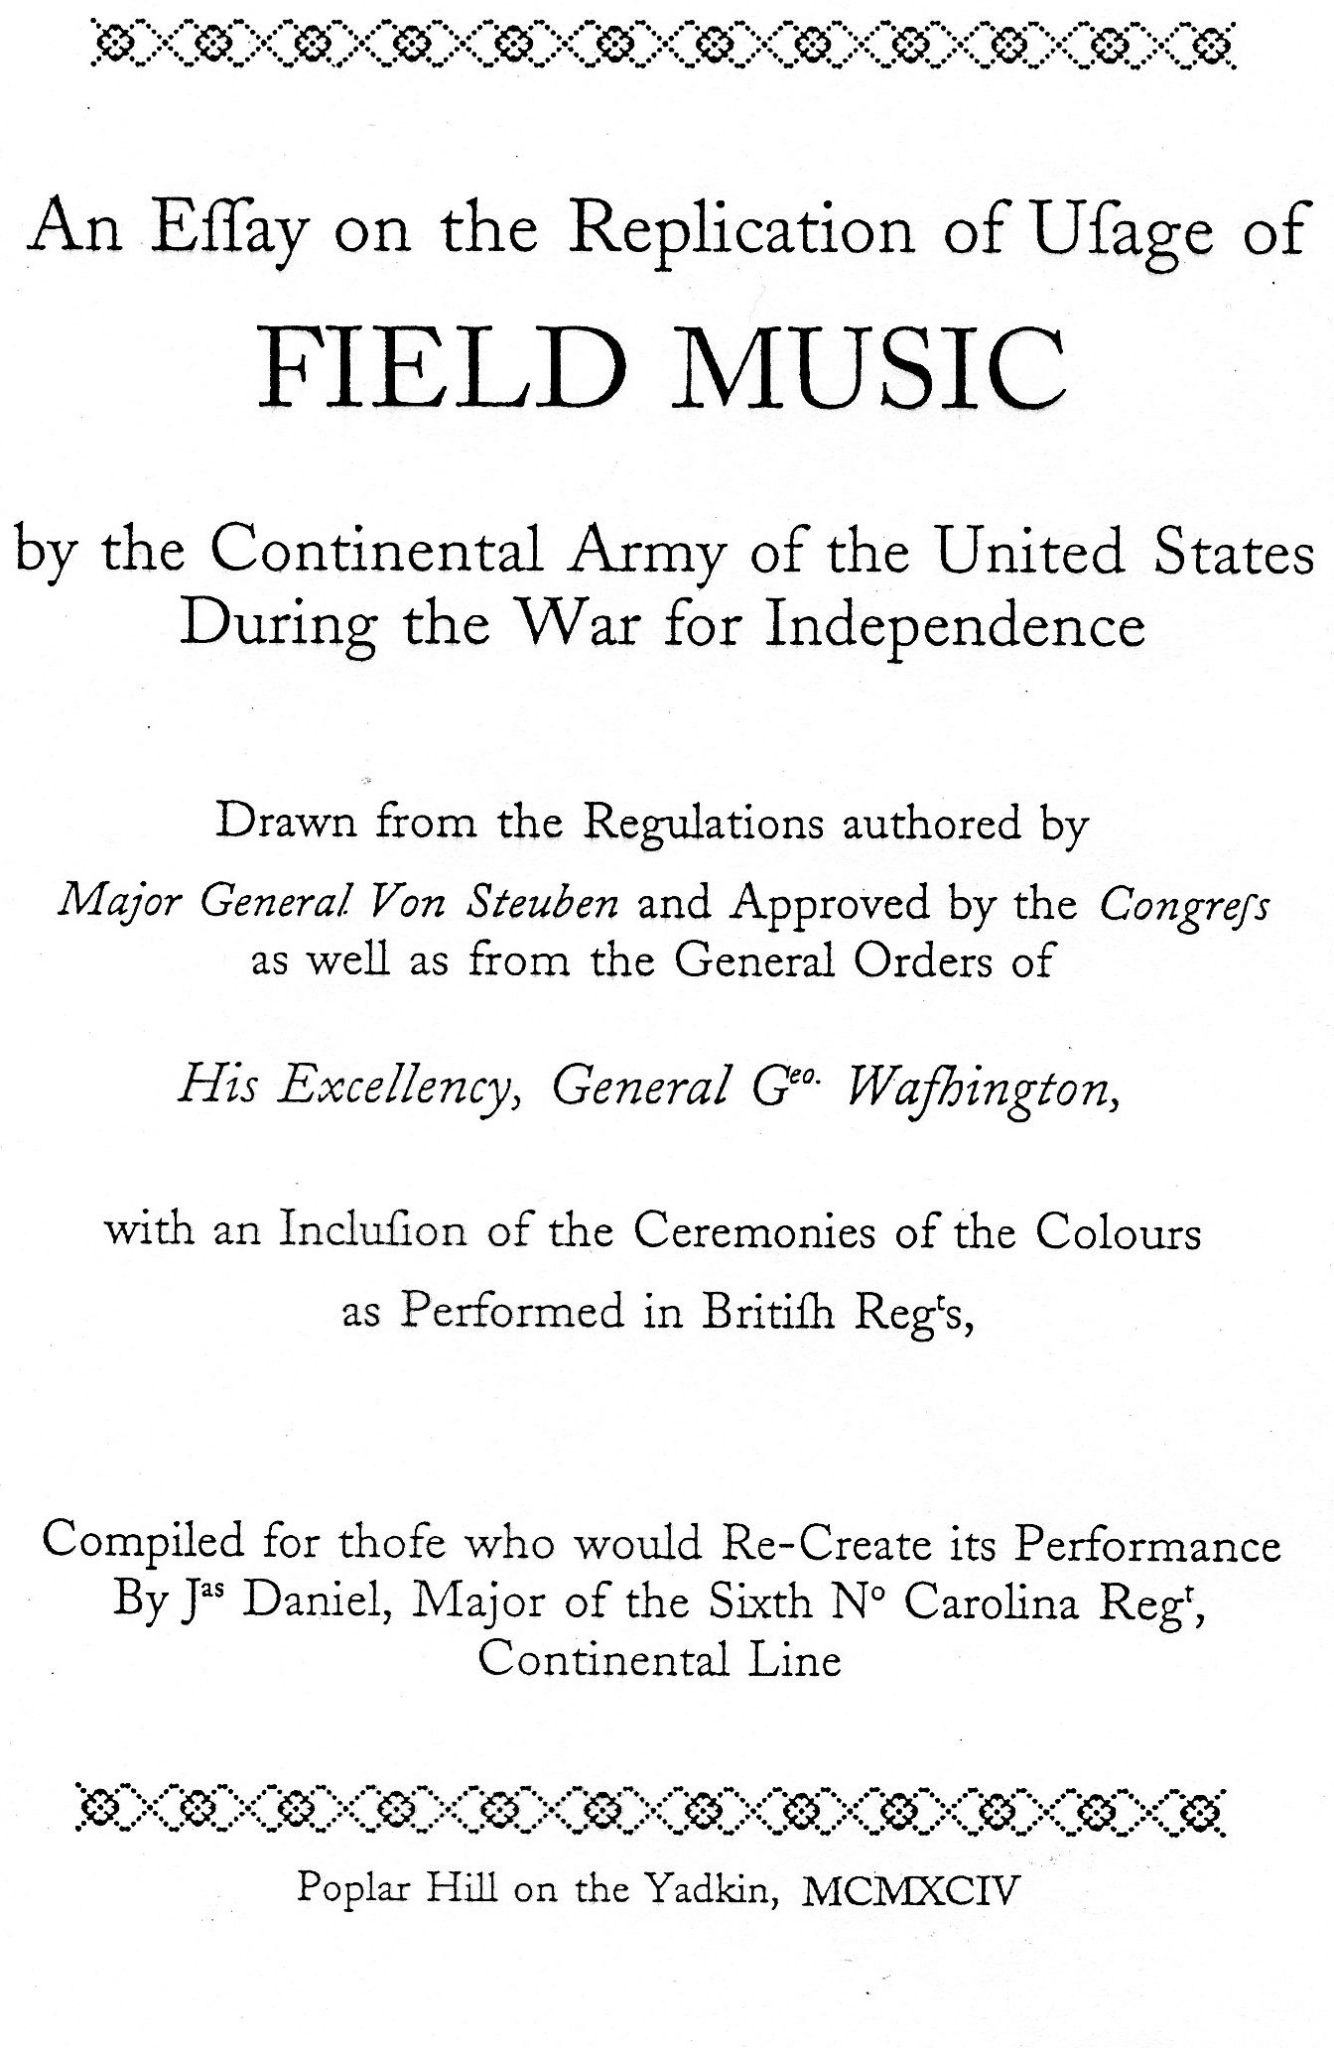 An Essay on the Replication of the Usage of Field Music by the Continental Army of the United States During the War for Independence